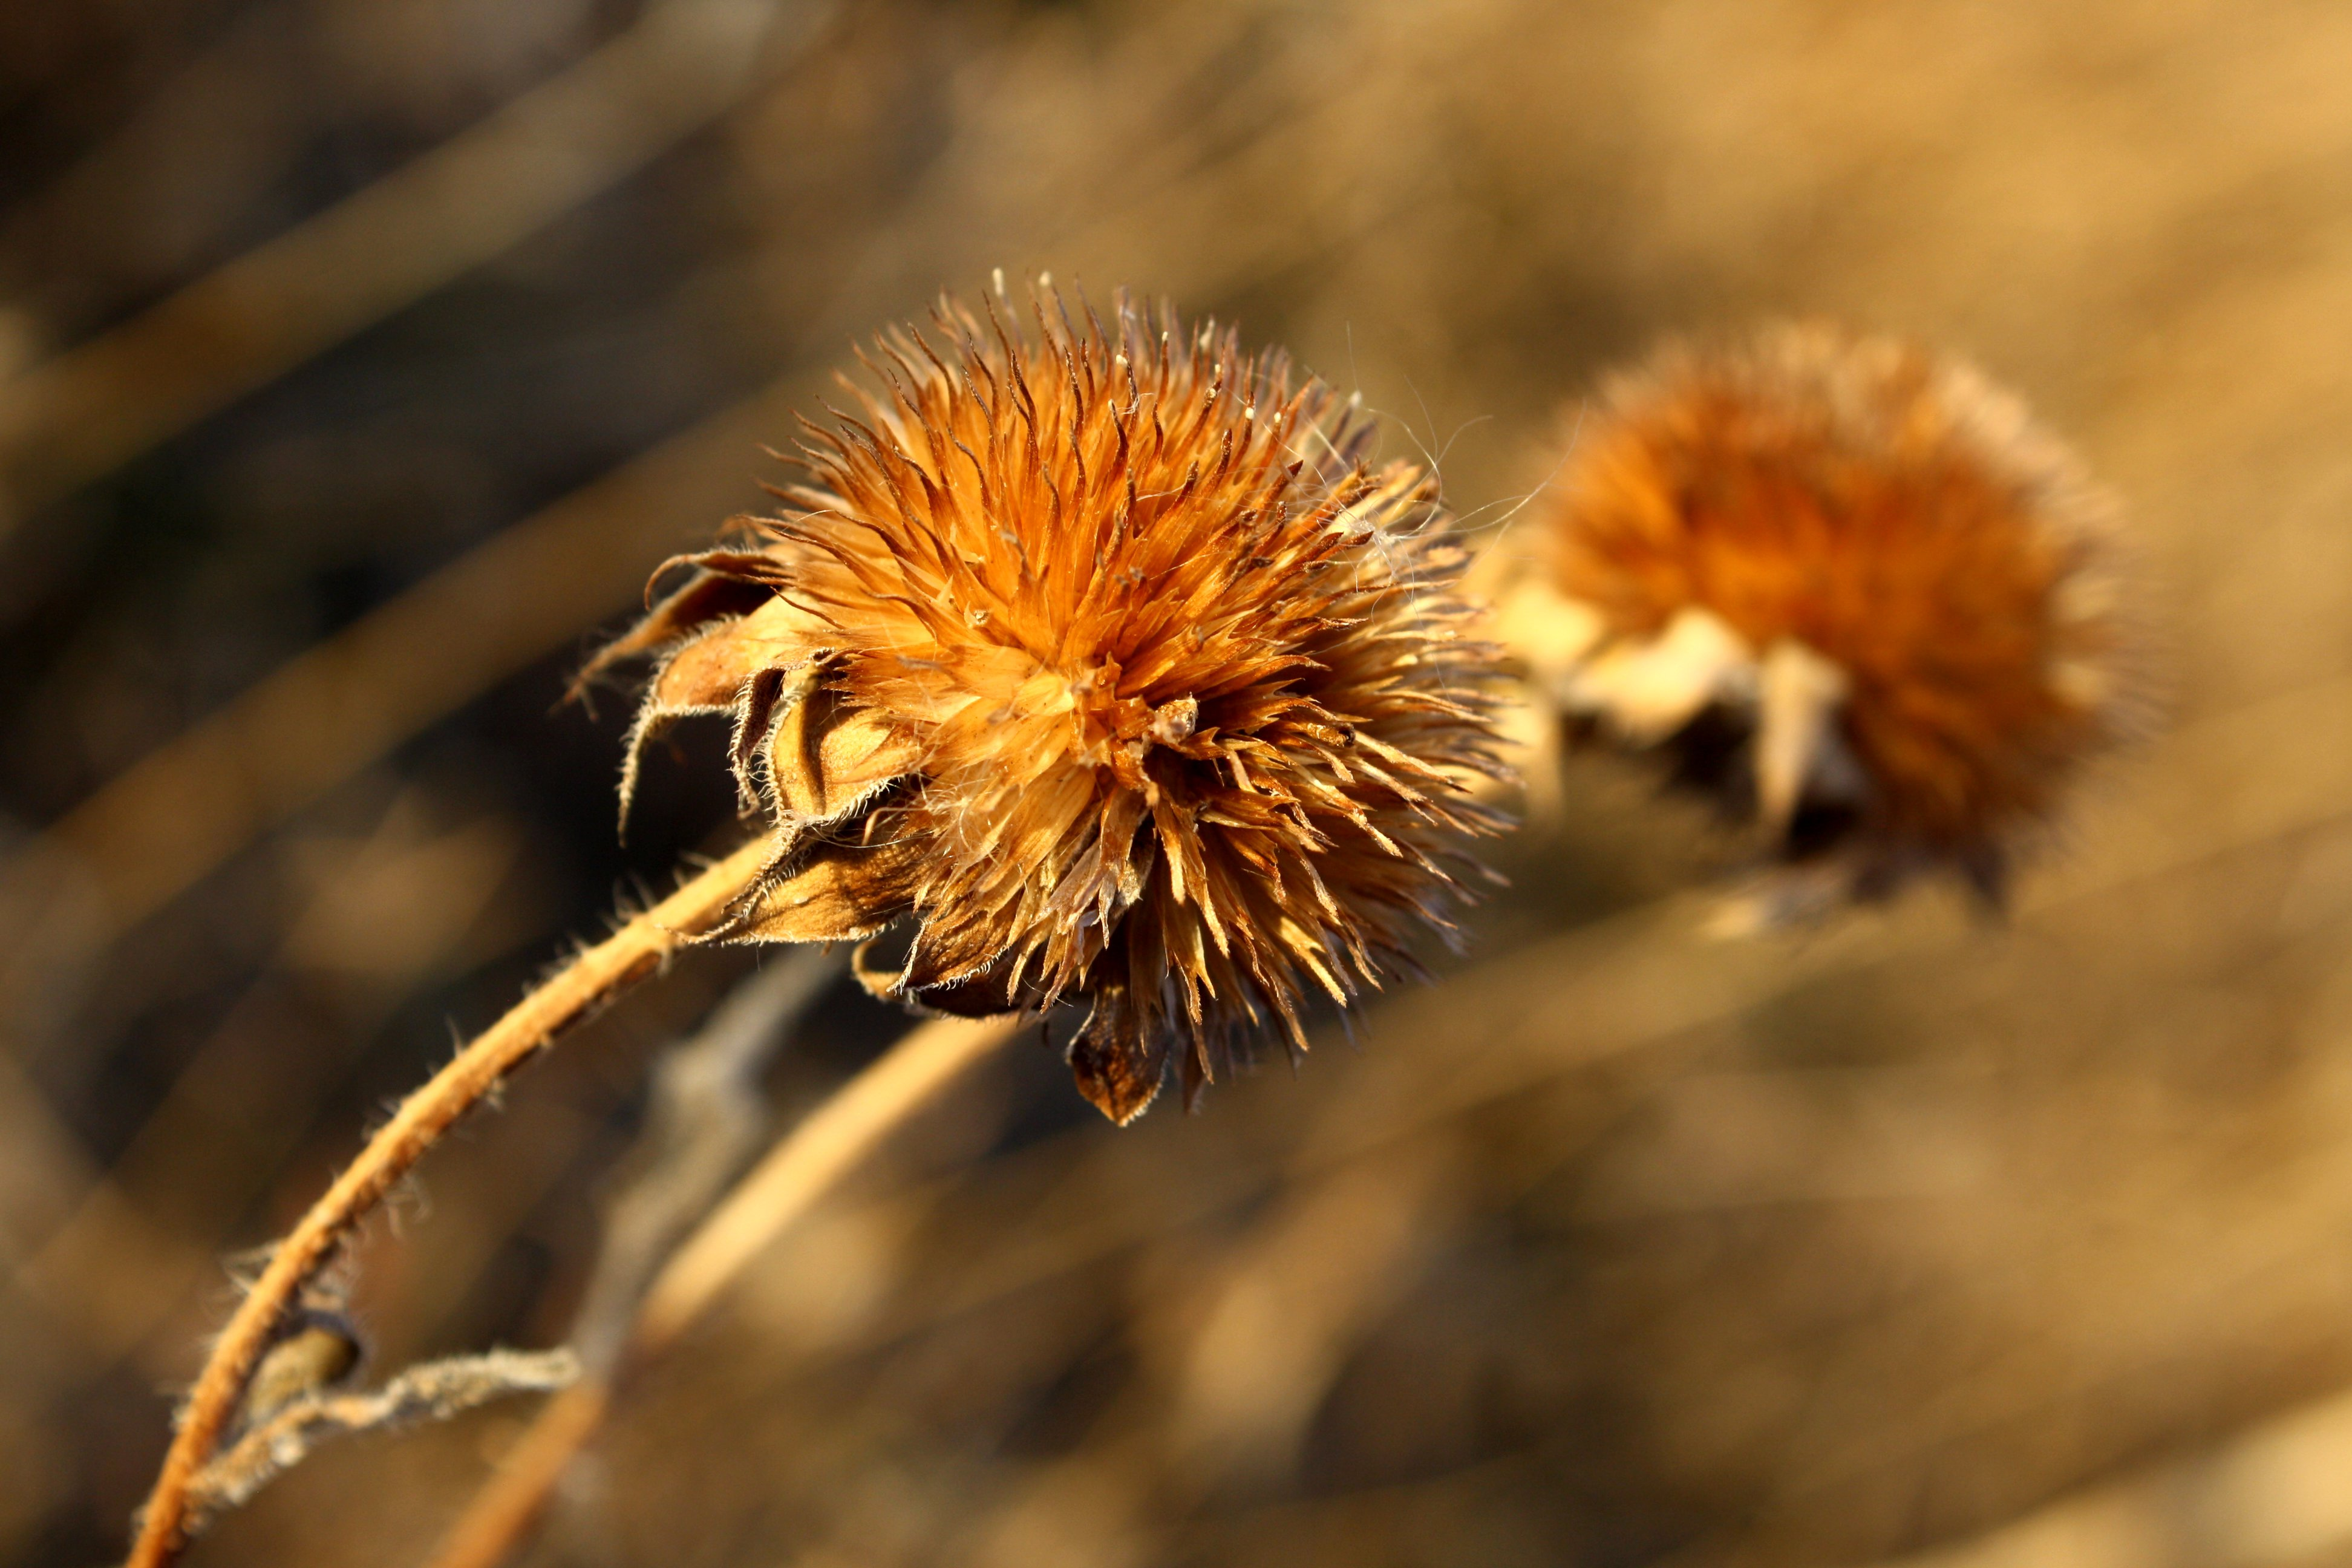 File:Round wild flower seed head.jpg - Wikimedia Commons